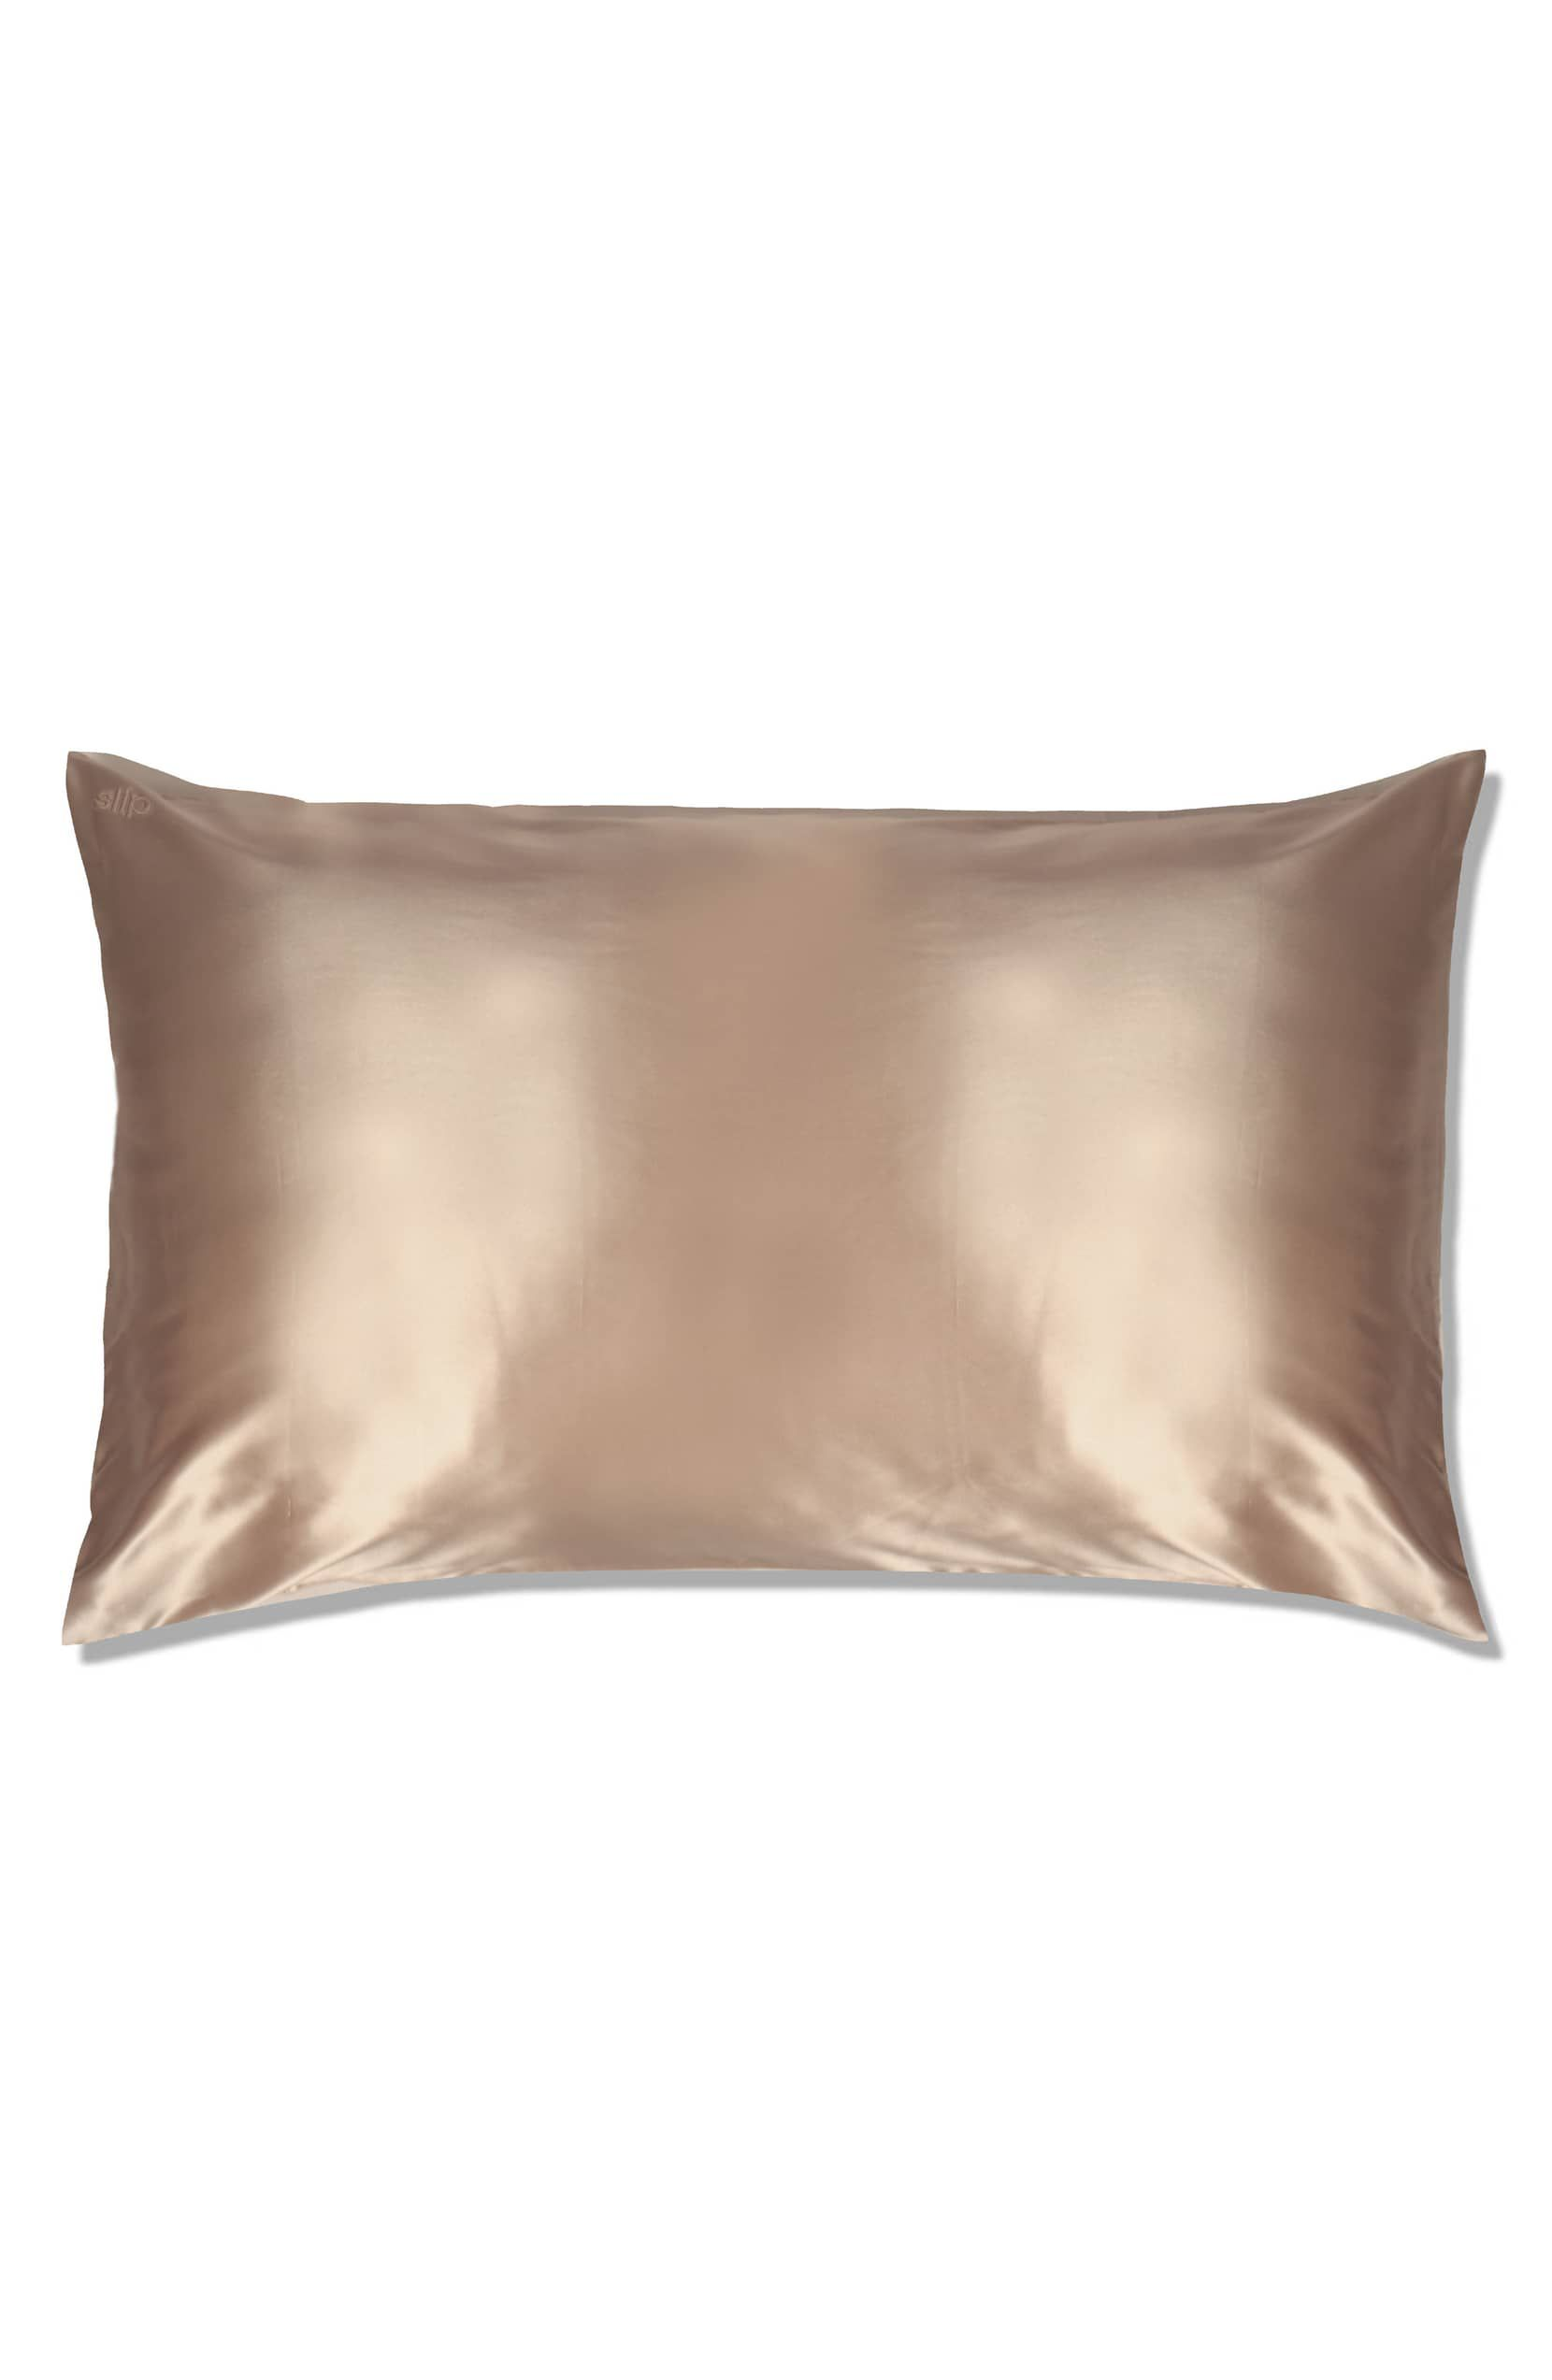 Pure Silk Pillowcase in Caramel